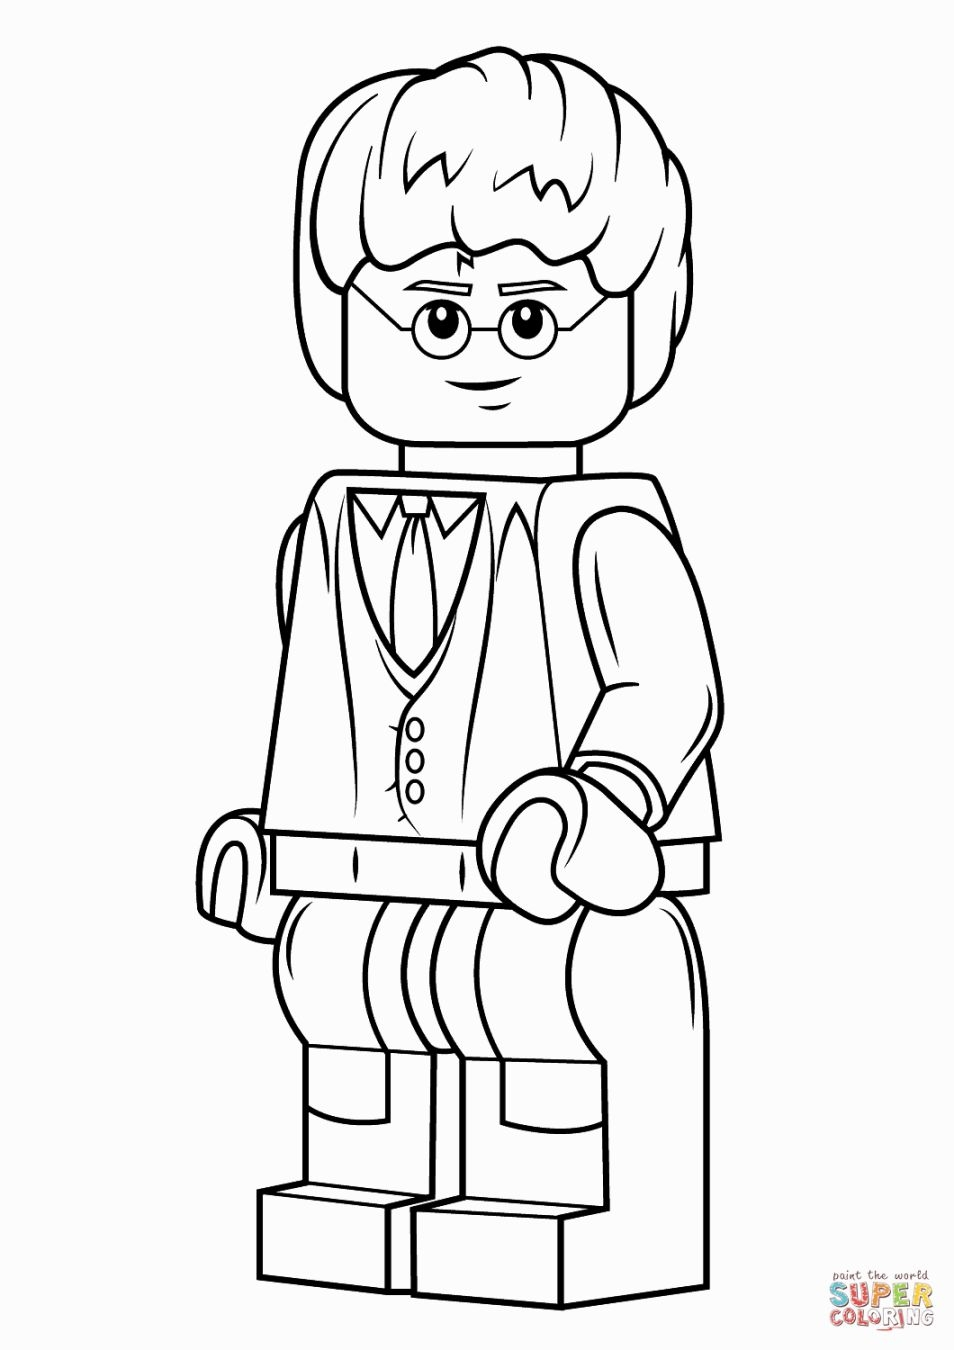 selena gomez coloring pages - lego harry potter coloring pages